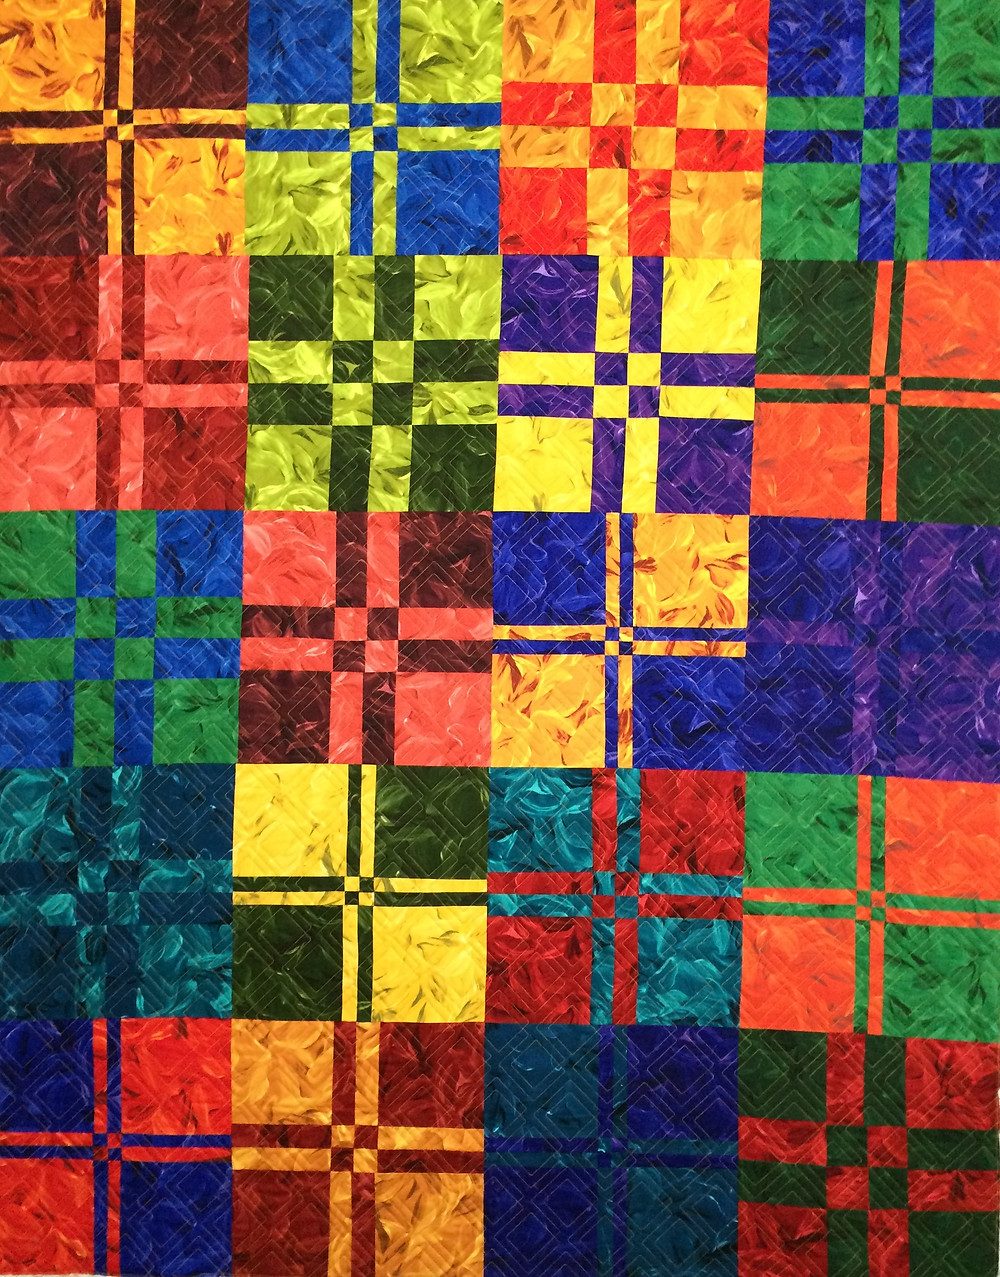 Beth Square in a Square Quilt